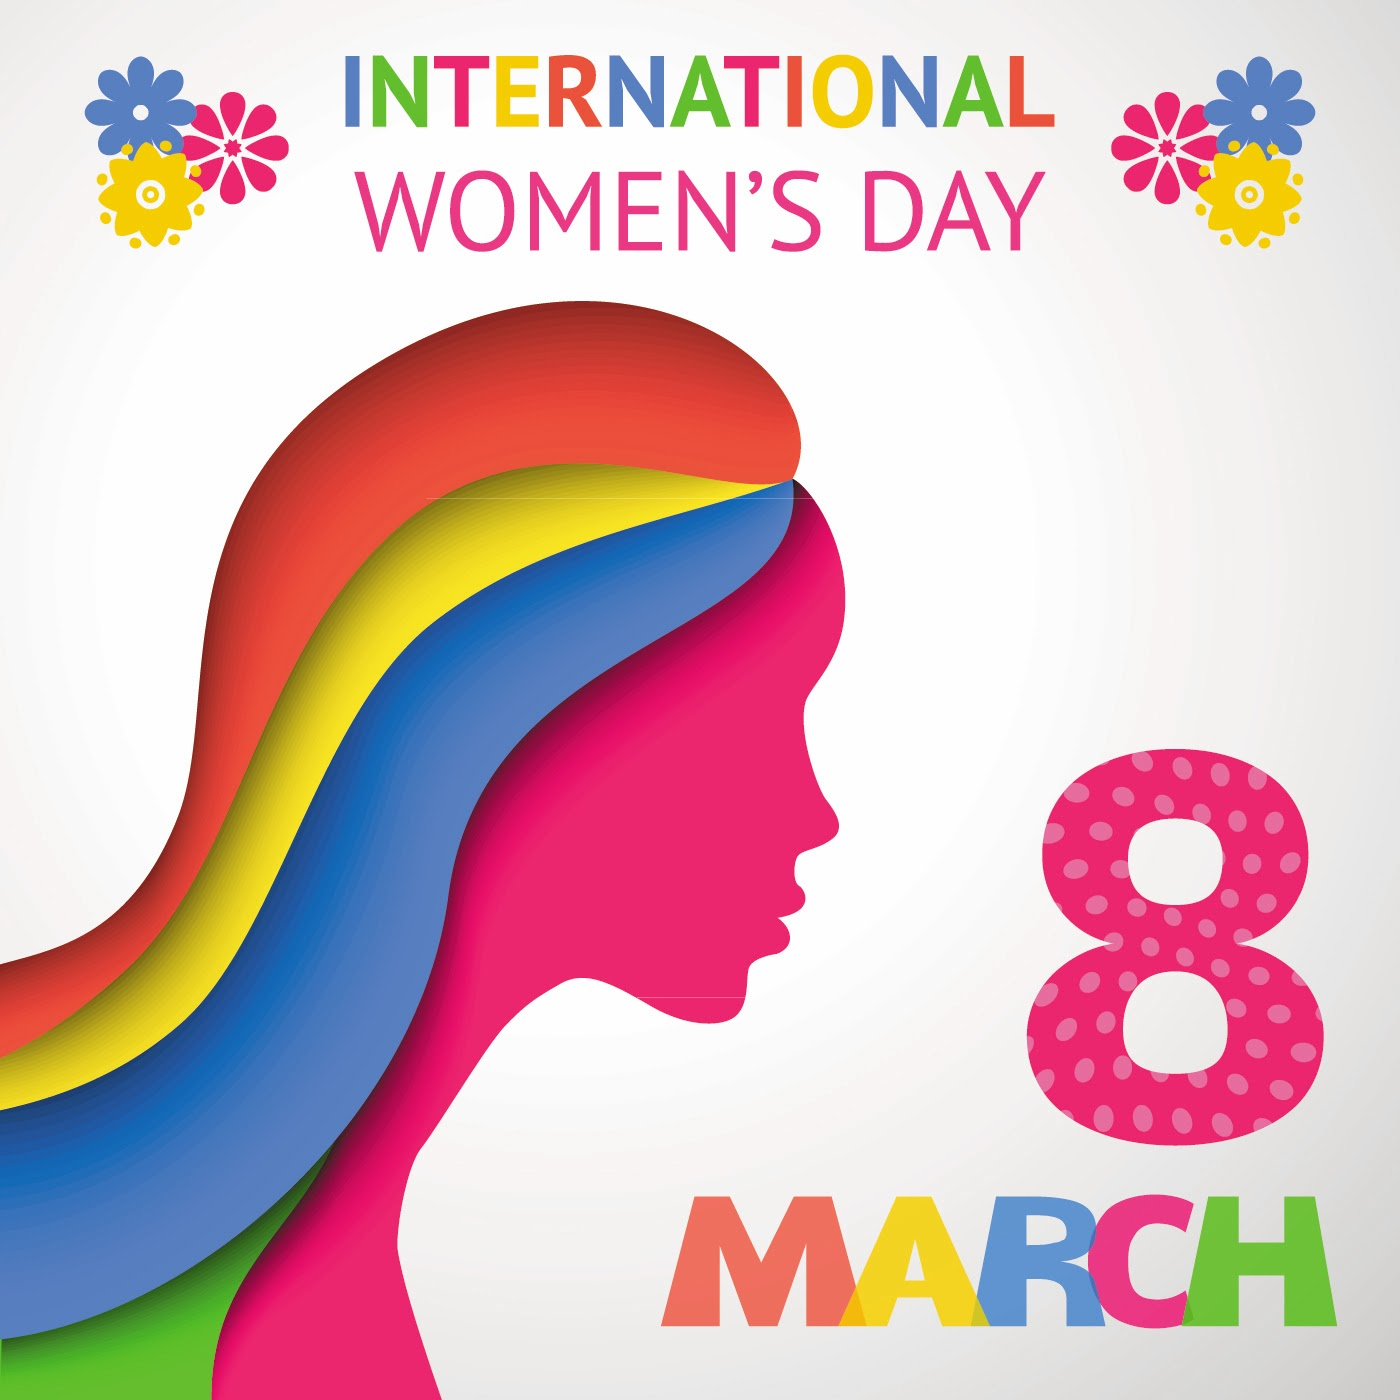 International Womens Day 8 March Vectors Themes Greetings Cards